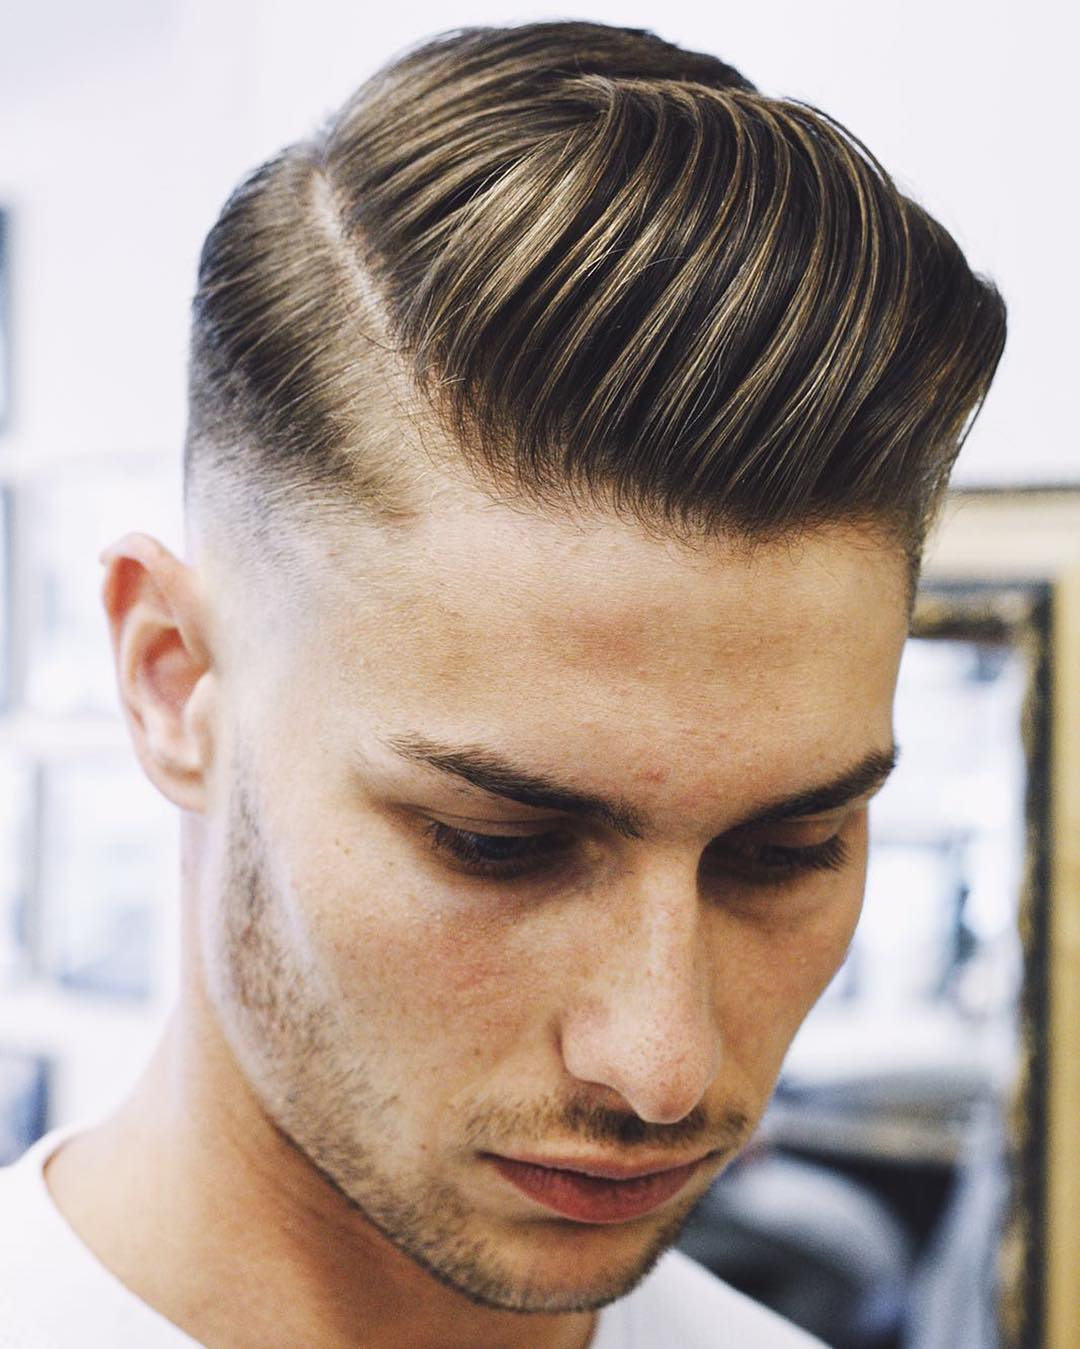 ppreshaw slick side part hairstyle for men 25 Popular Haircuts For Men 2018